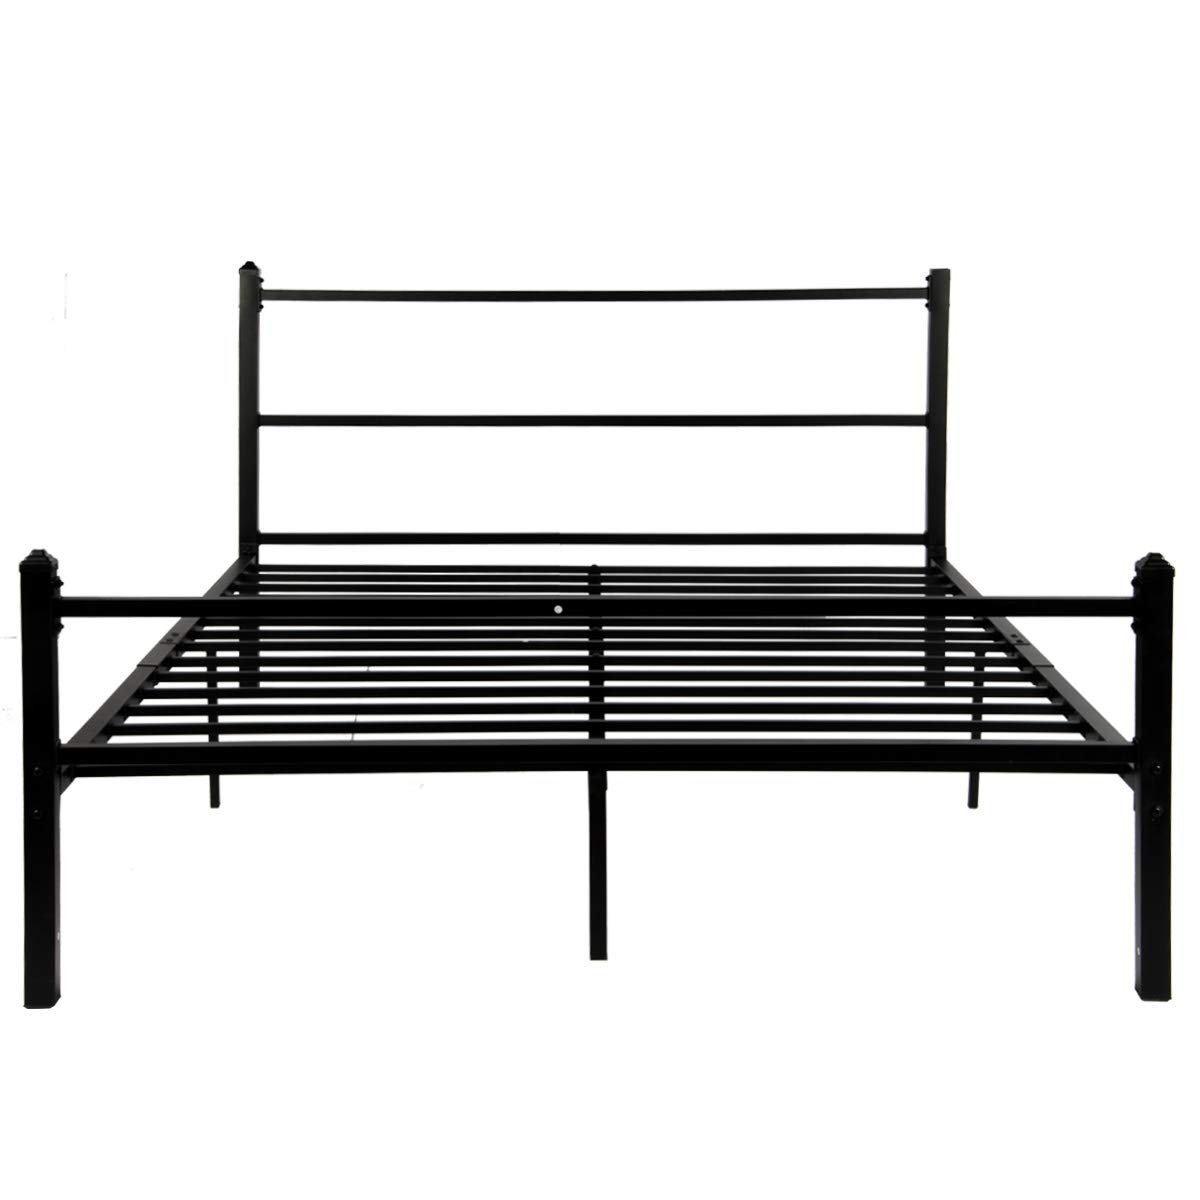 new products 31bb8 03fca GreenForest Bed Frame Queen Size No Squeaky Metal Platform Bed with  Headboard Non Slip Steel Slat Support Heavy Duty Bed Base Mattress  Foundation